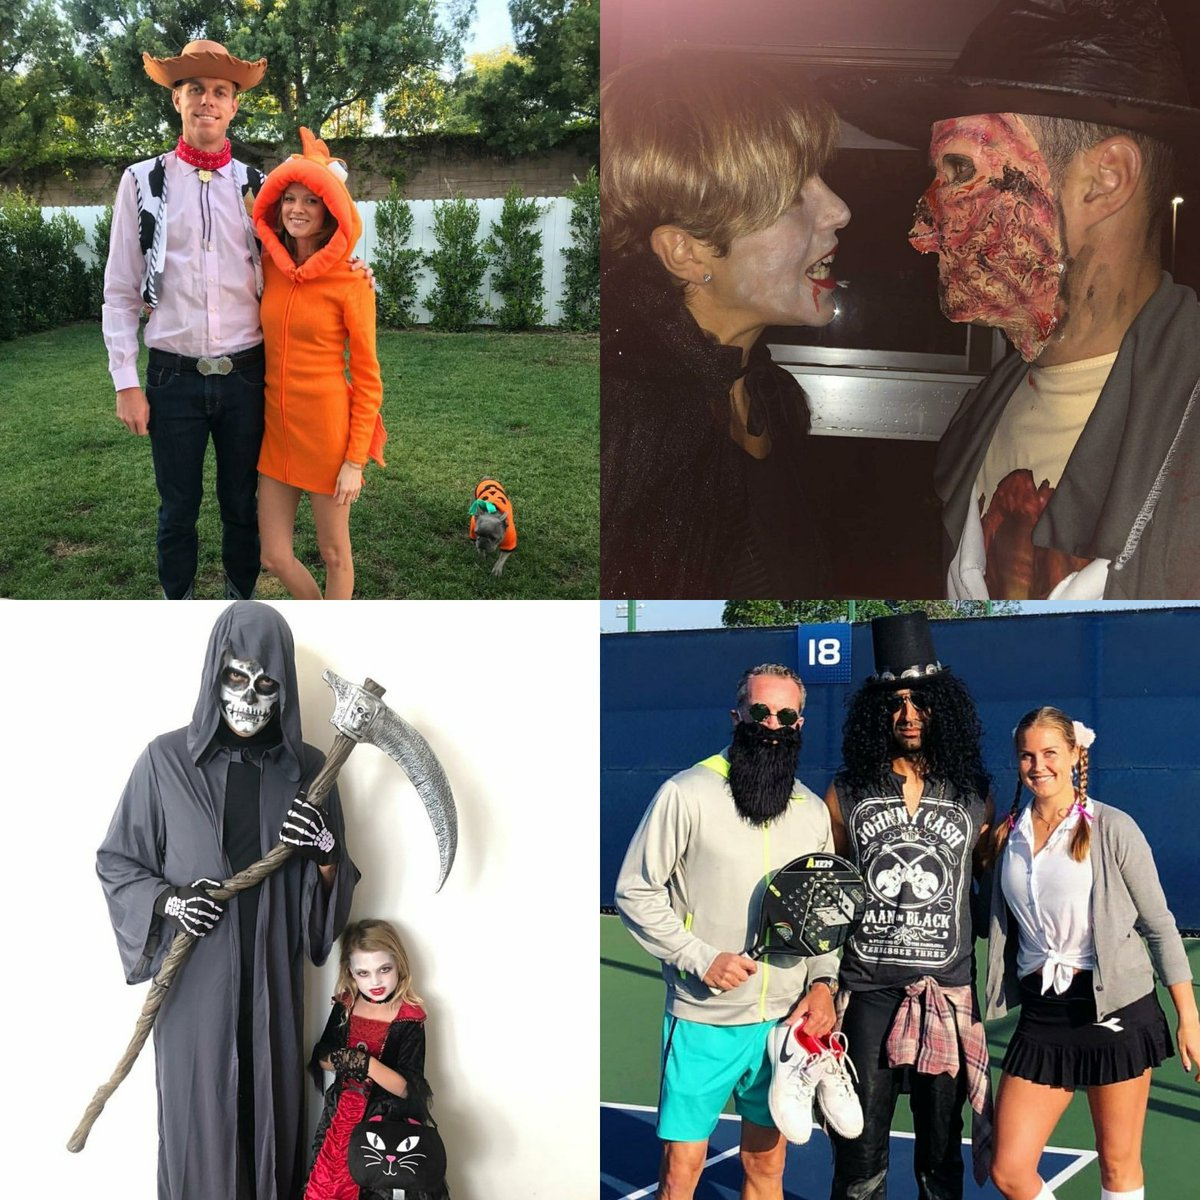 Members of the #WTTFamily had a great time dressing up for Halloween yesterday! 🎾🤠☠